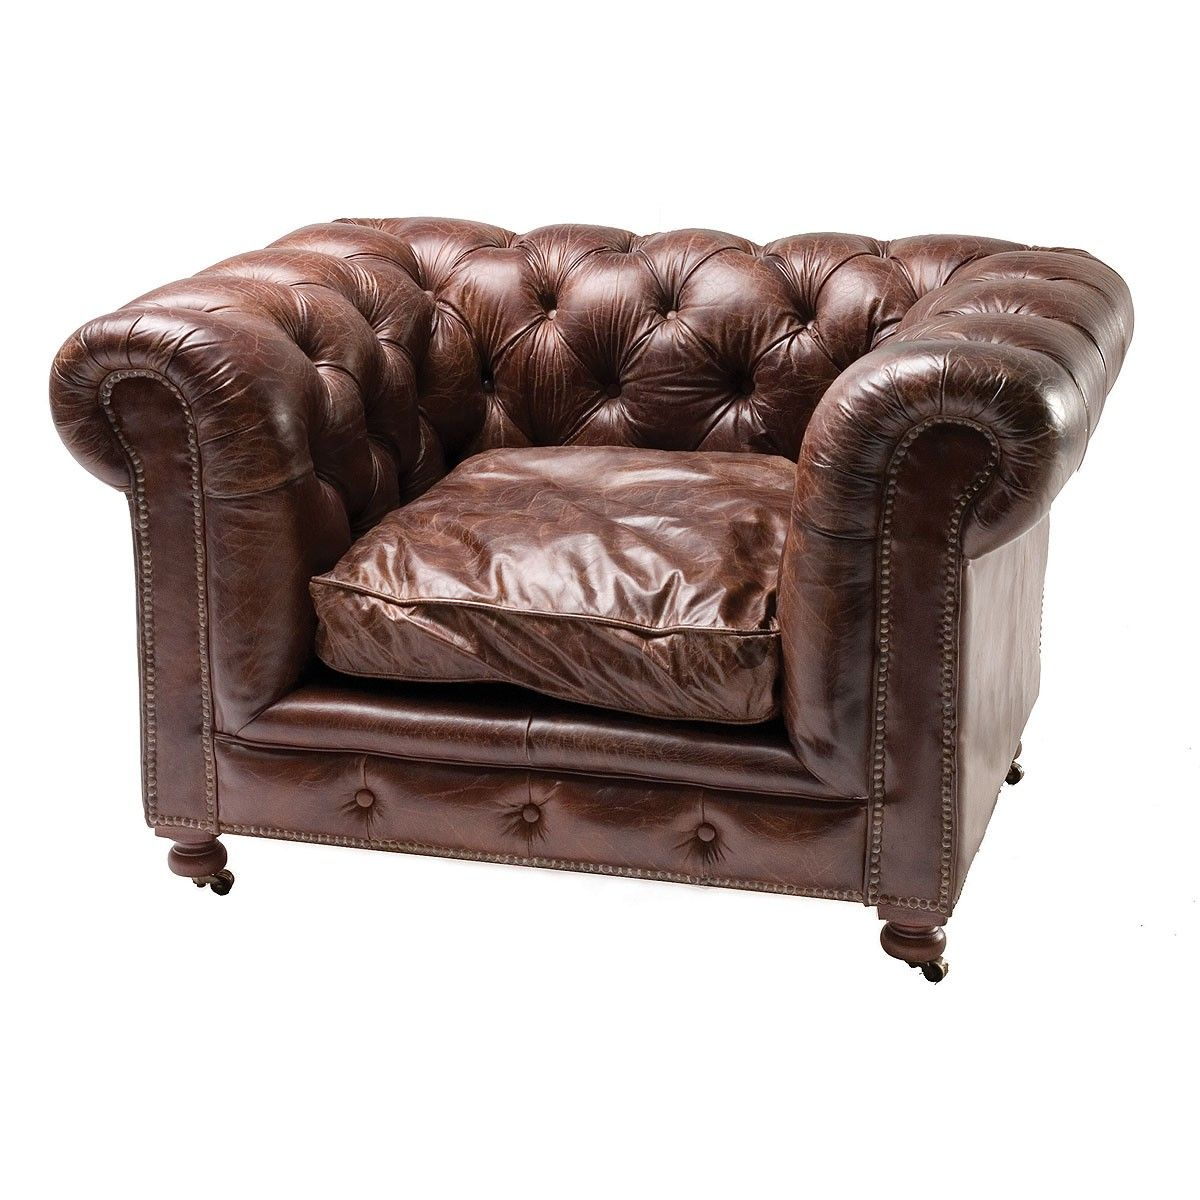 abbott vintage cigar tufted leather sofa how to clean the fabric conrad chesterfield armchair